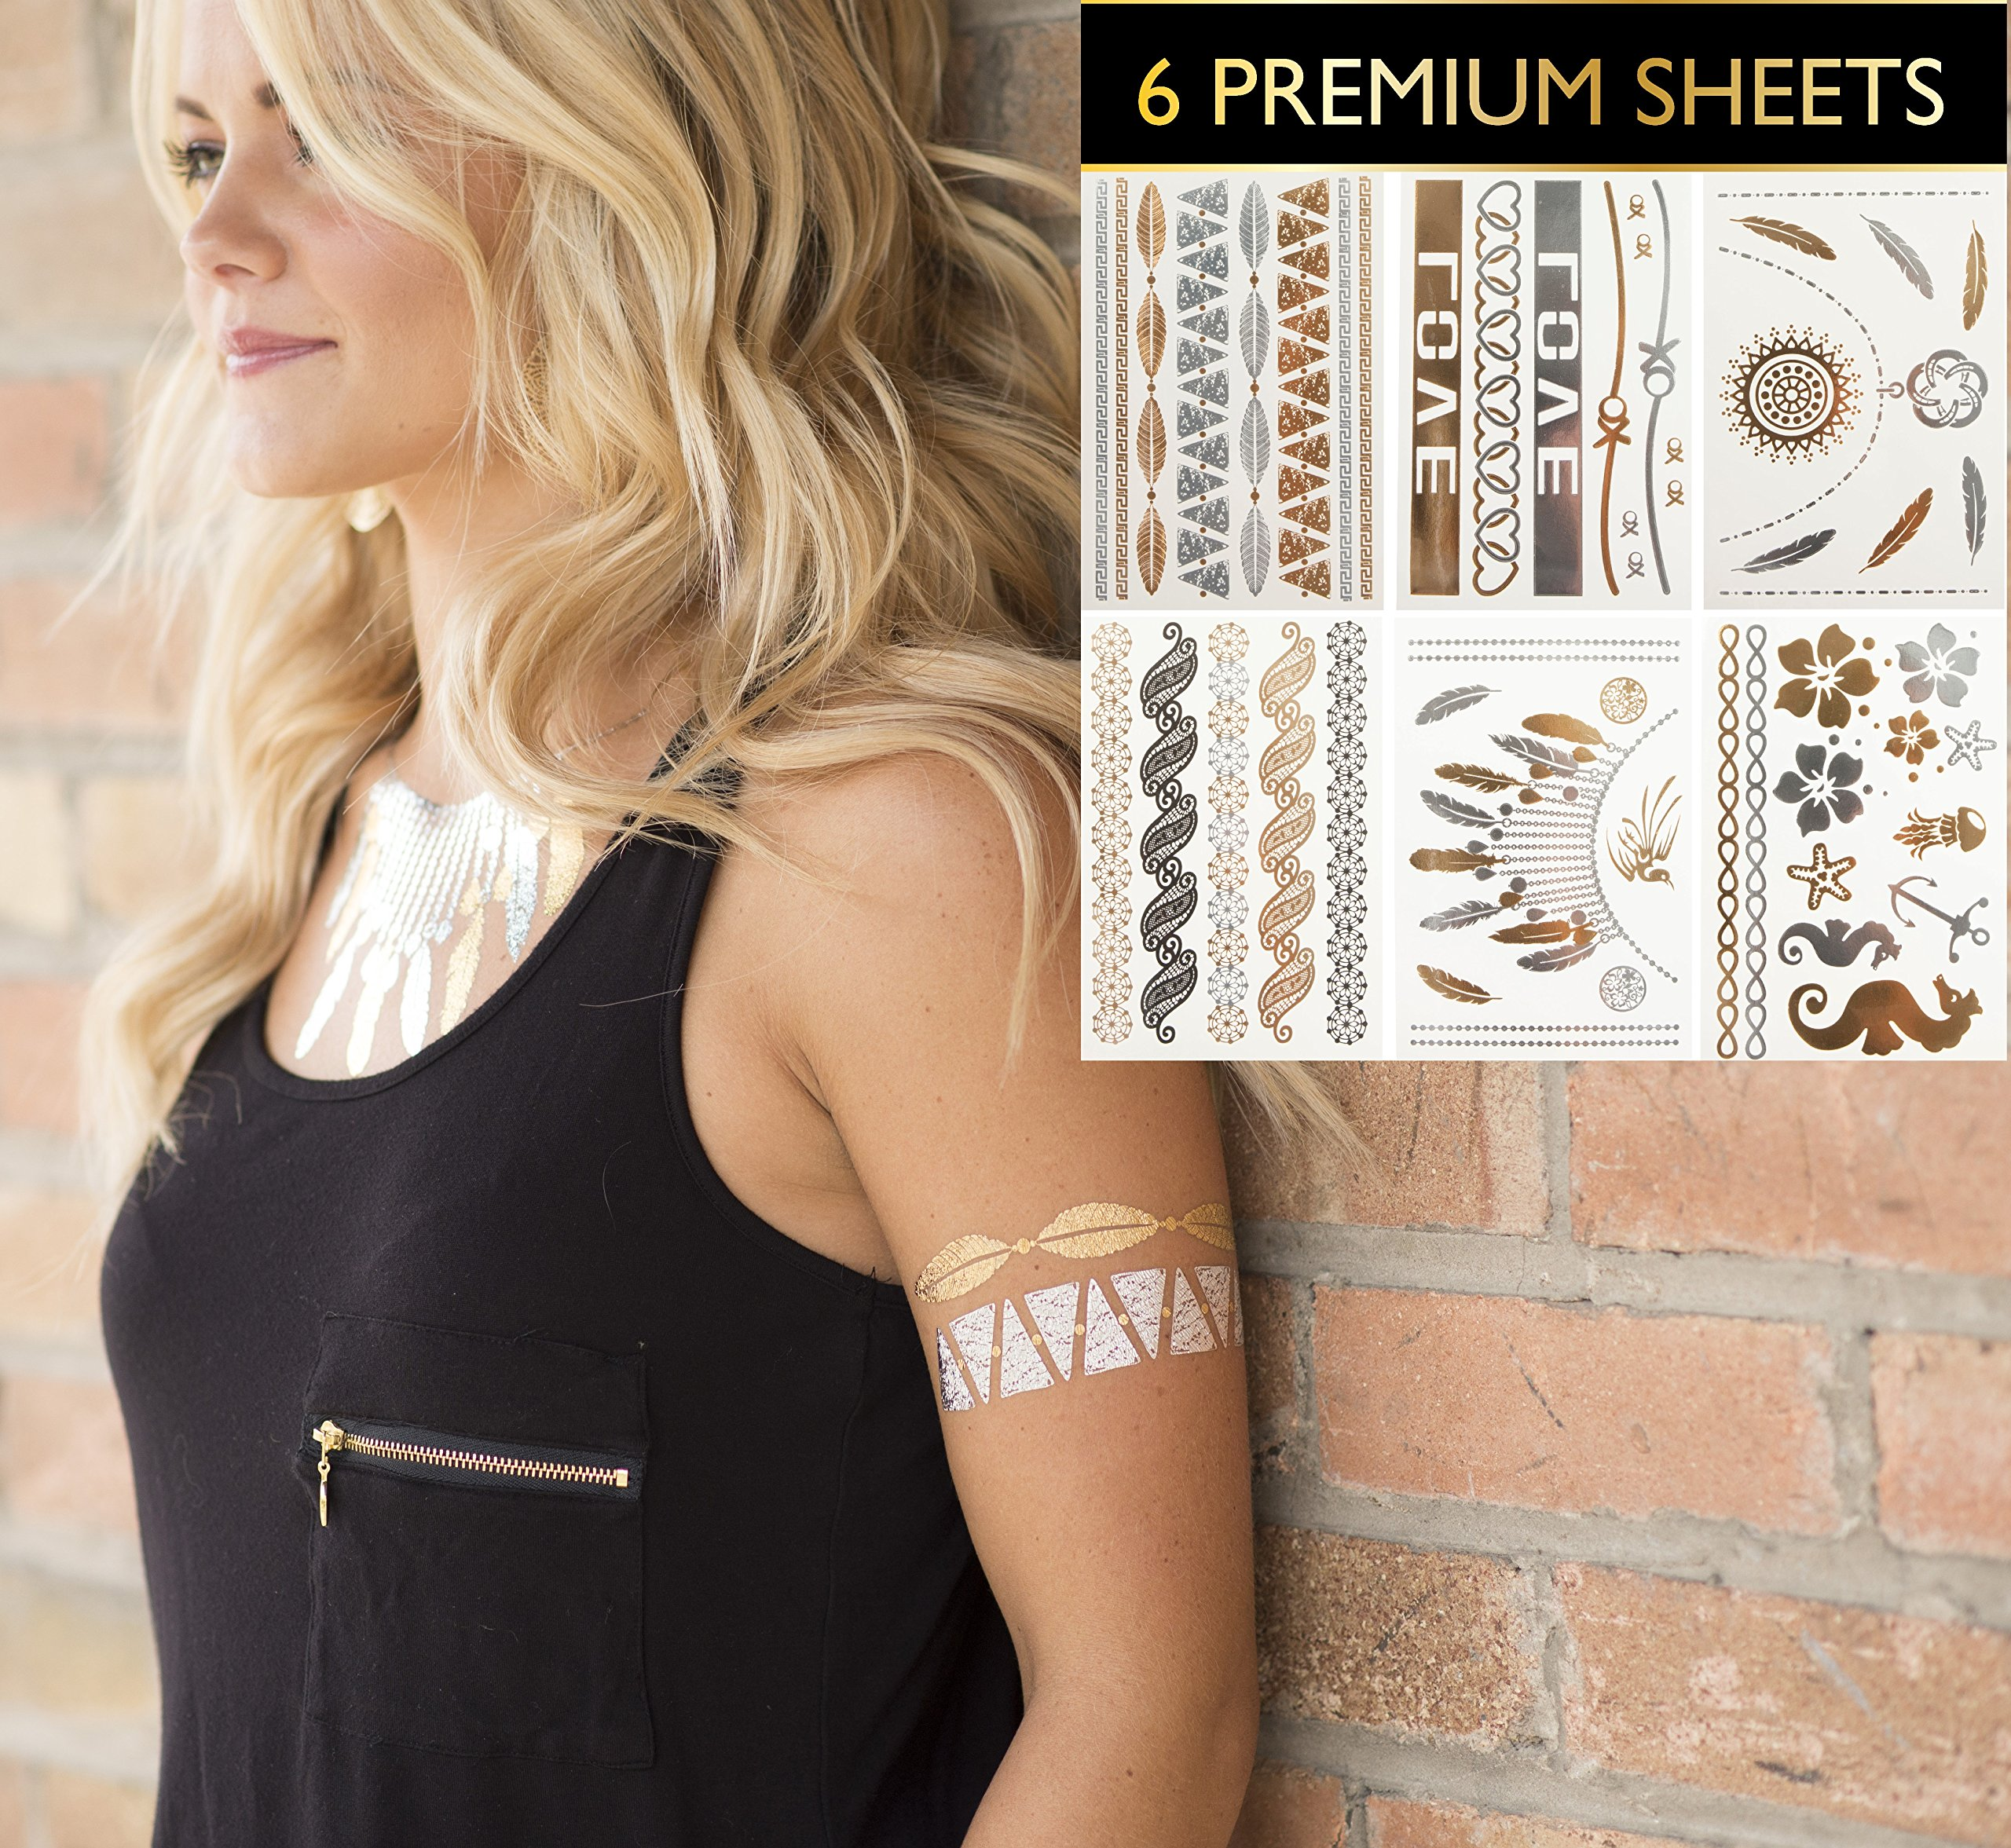 6 Premium Sheets - Metallic Gold and Silver Temporary Flash Tattoos and Trendy